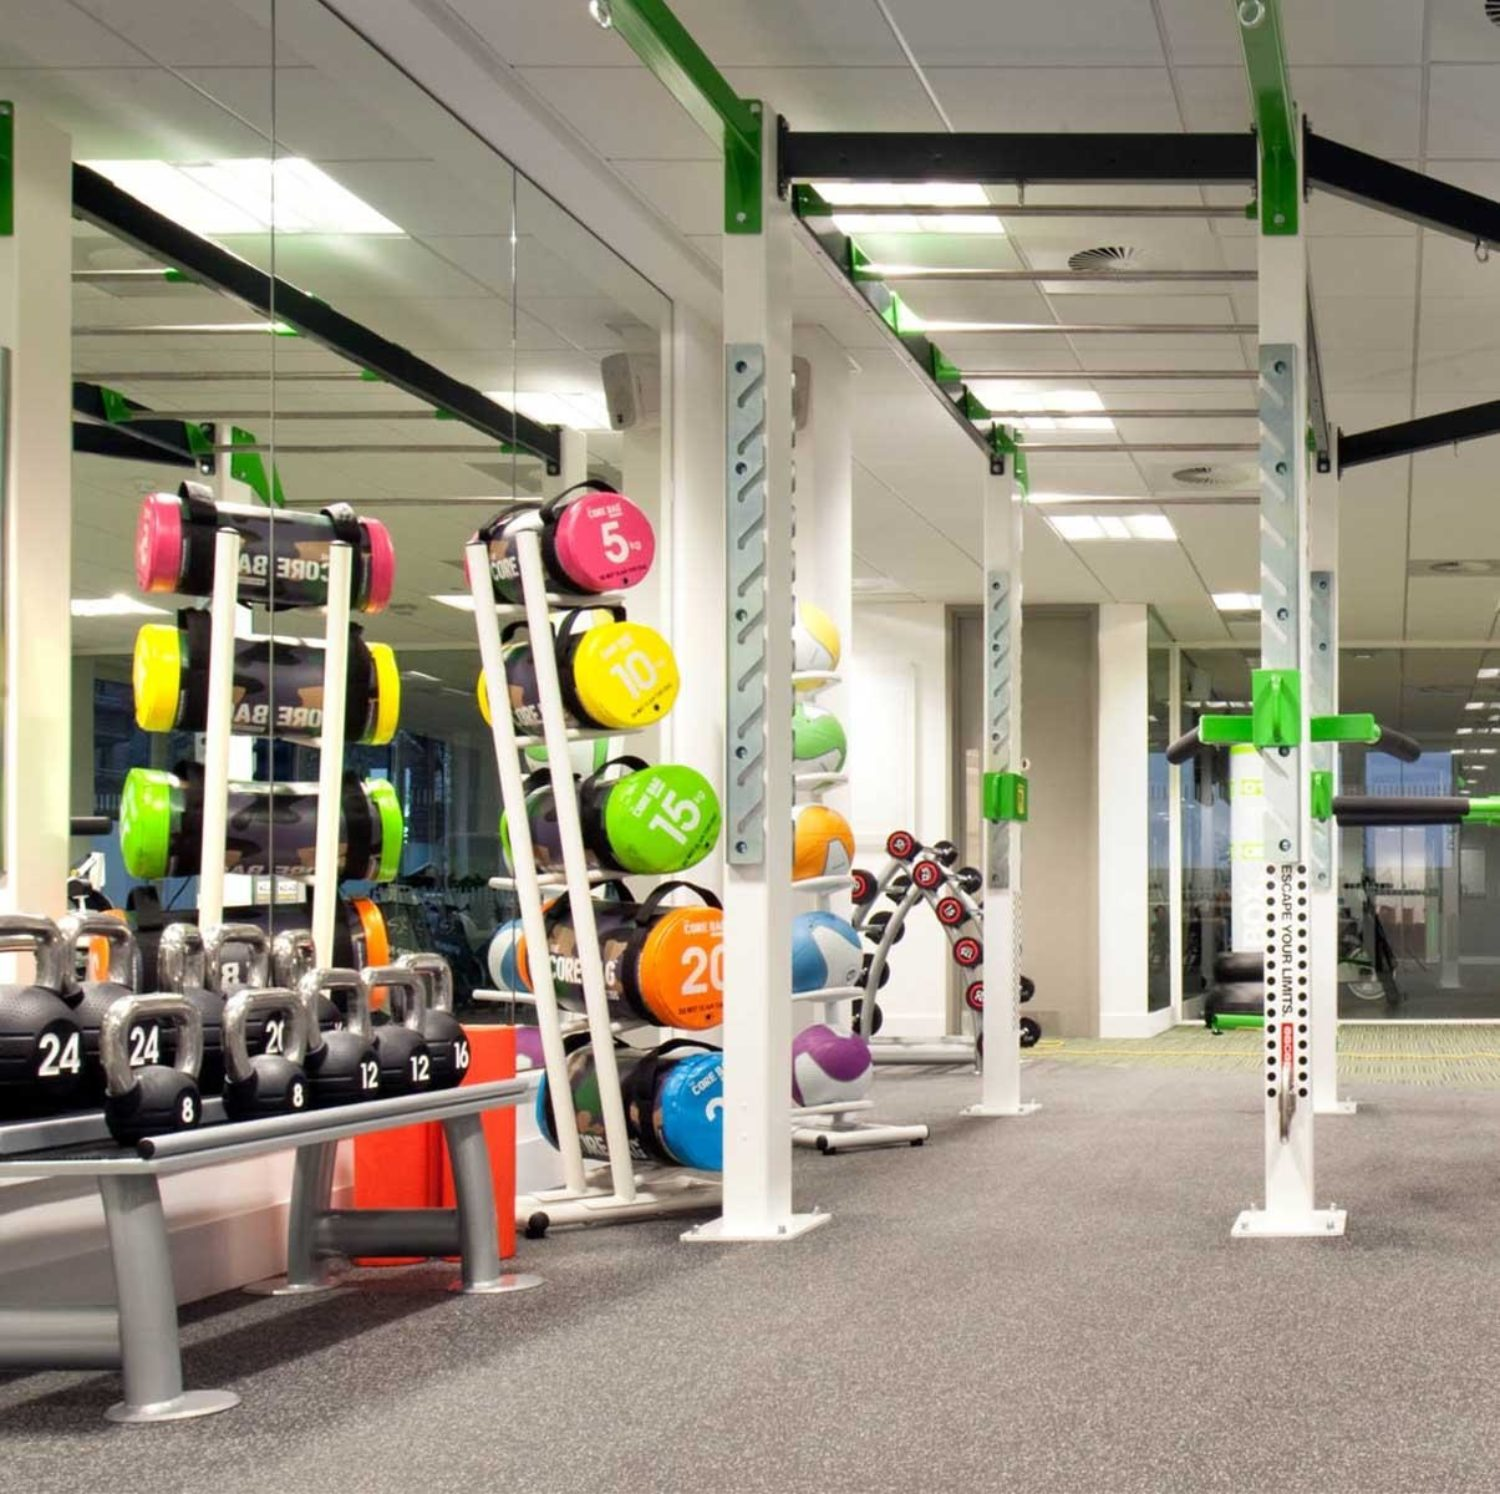 Nuffield office gym for staff wellbeing